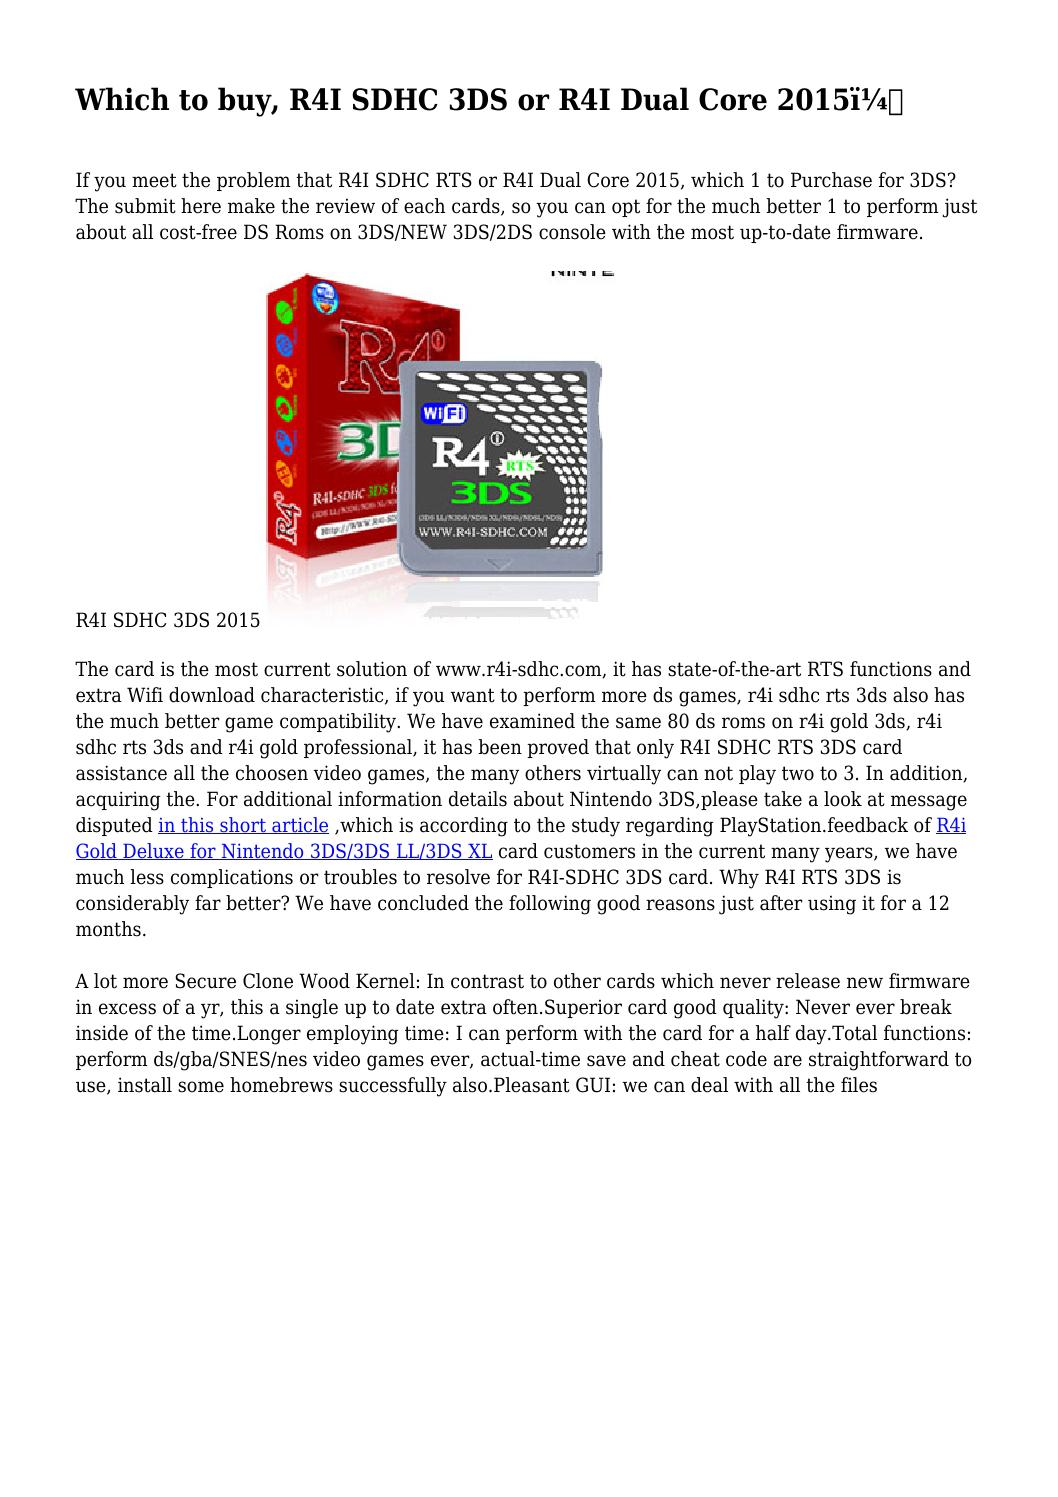 Which to buy, R4I SDHC 3DS or R4I Dual Core 2015? by